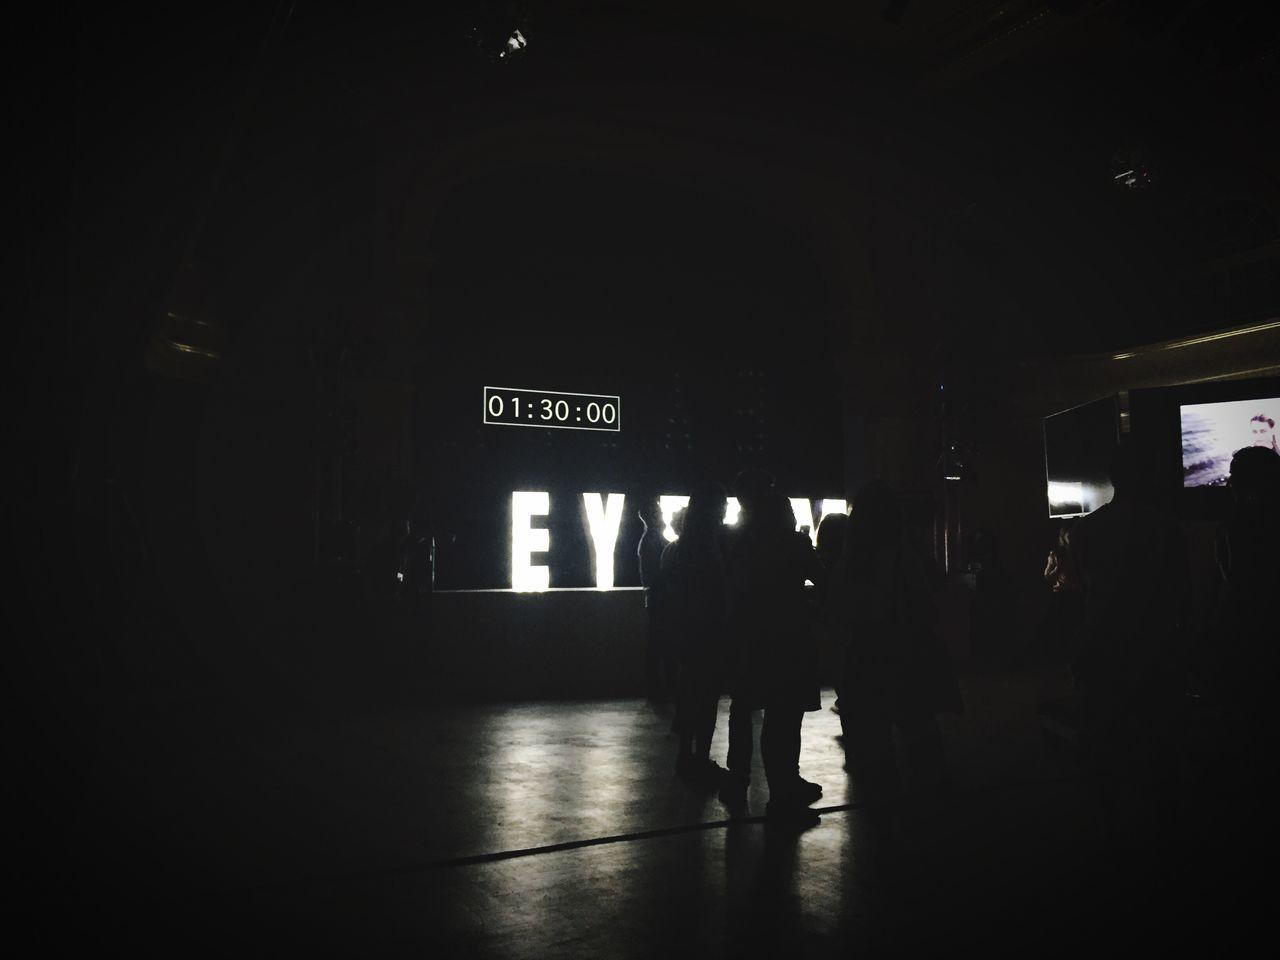 Eyeemfestival16 Urban Lifestyle Light And Shadow Ey Communication Silhouette Night Full Length Dark Public Transport Information Sign Illuminated Group Of People Outline Journey Entrance